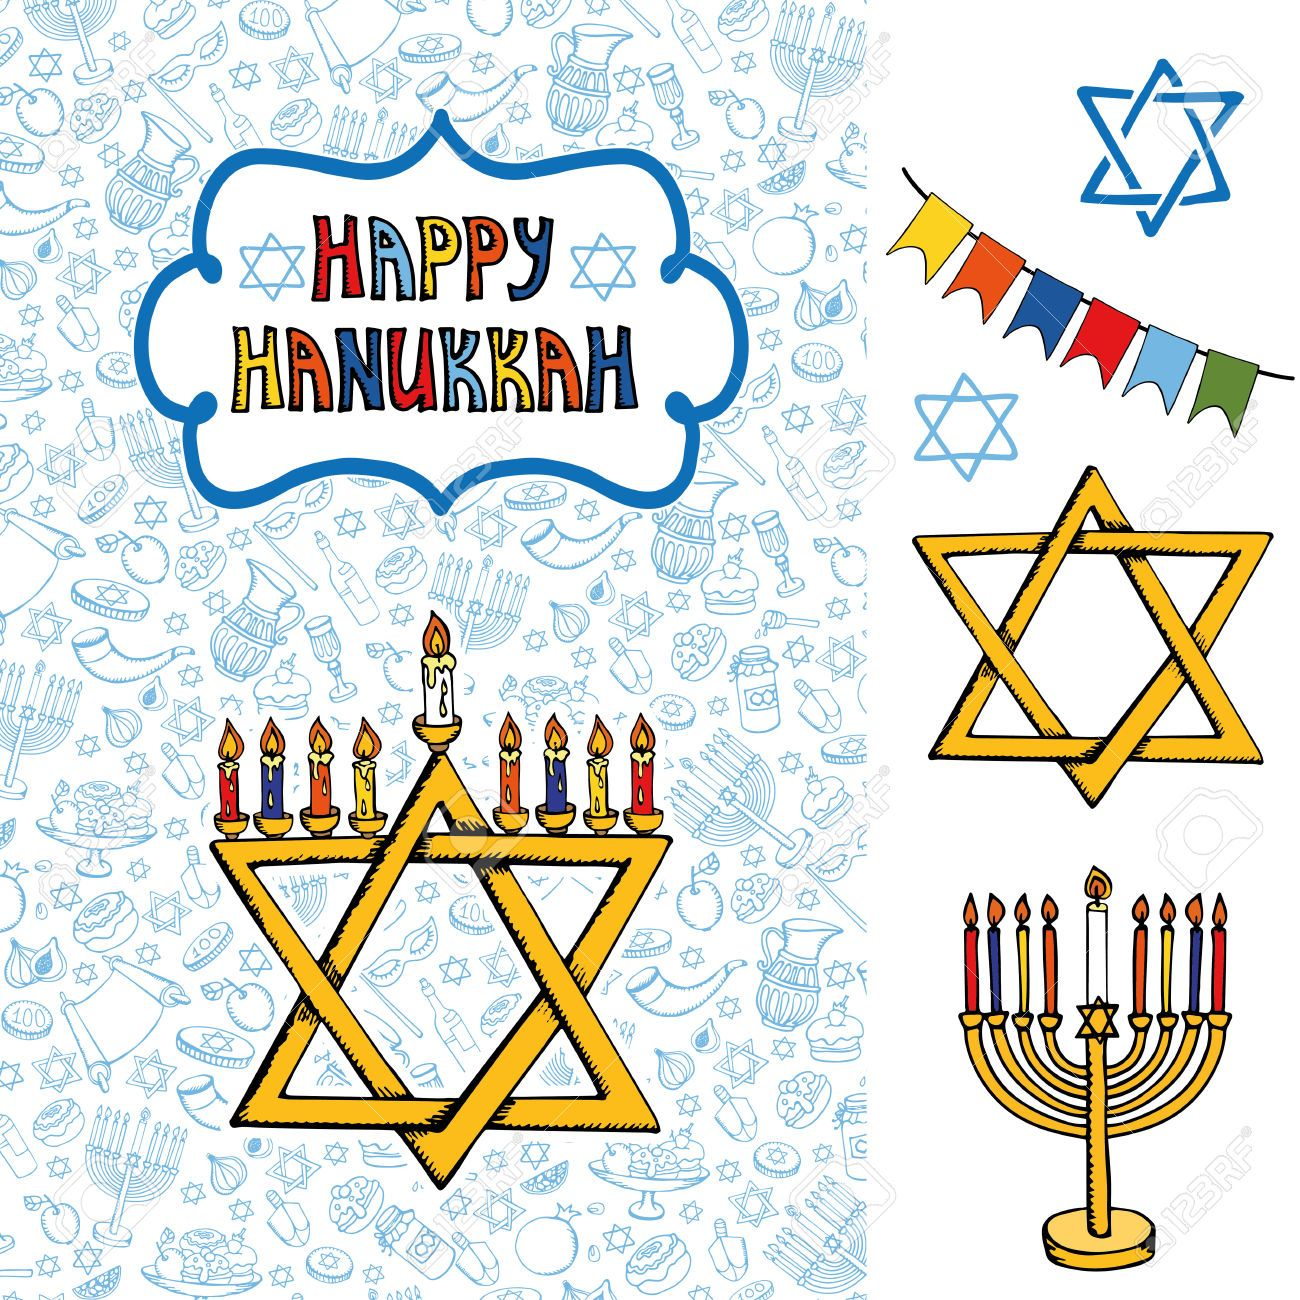 48524475 hanukkah symbols greeting card doodle hand drawing jewish 48524475 hanukkah symbols greeting card doodle hand drawing buycottarizona Images